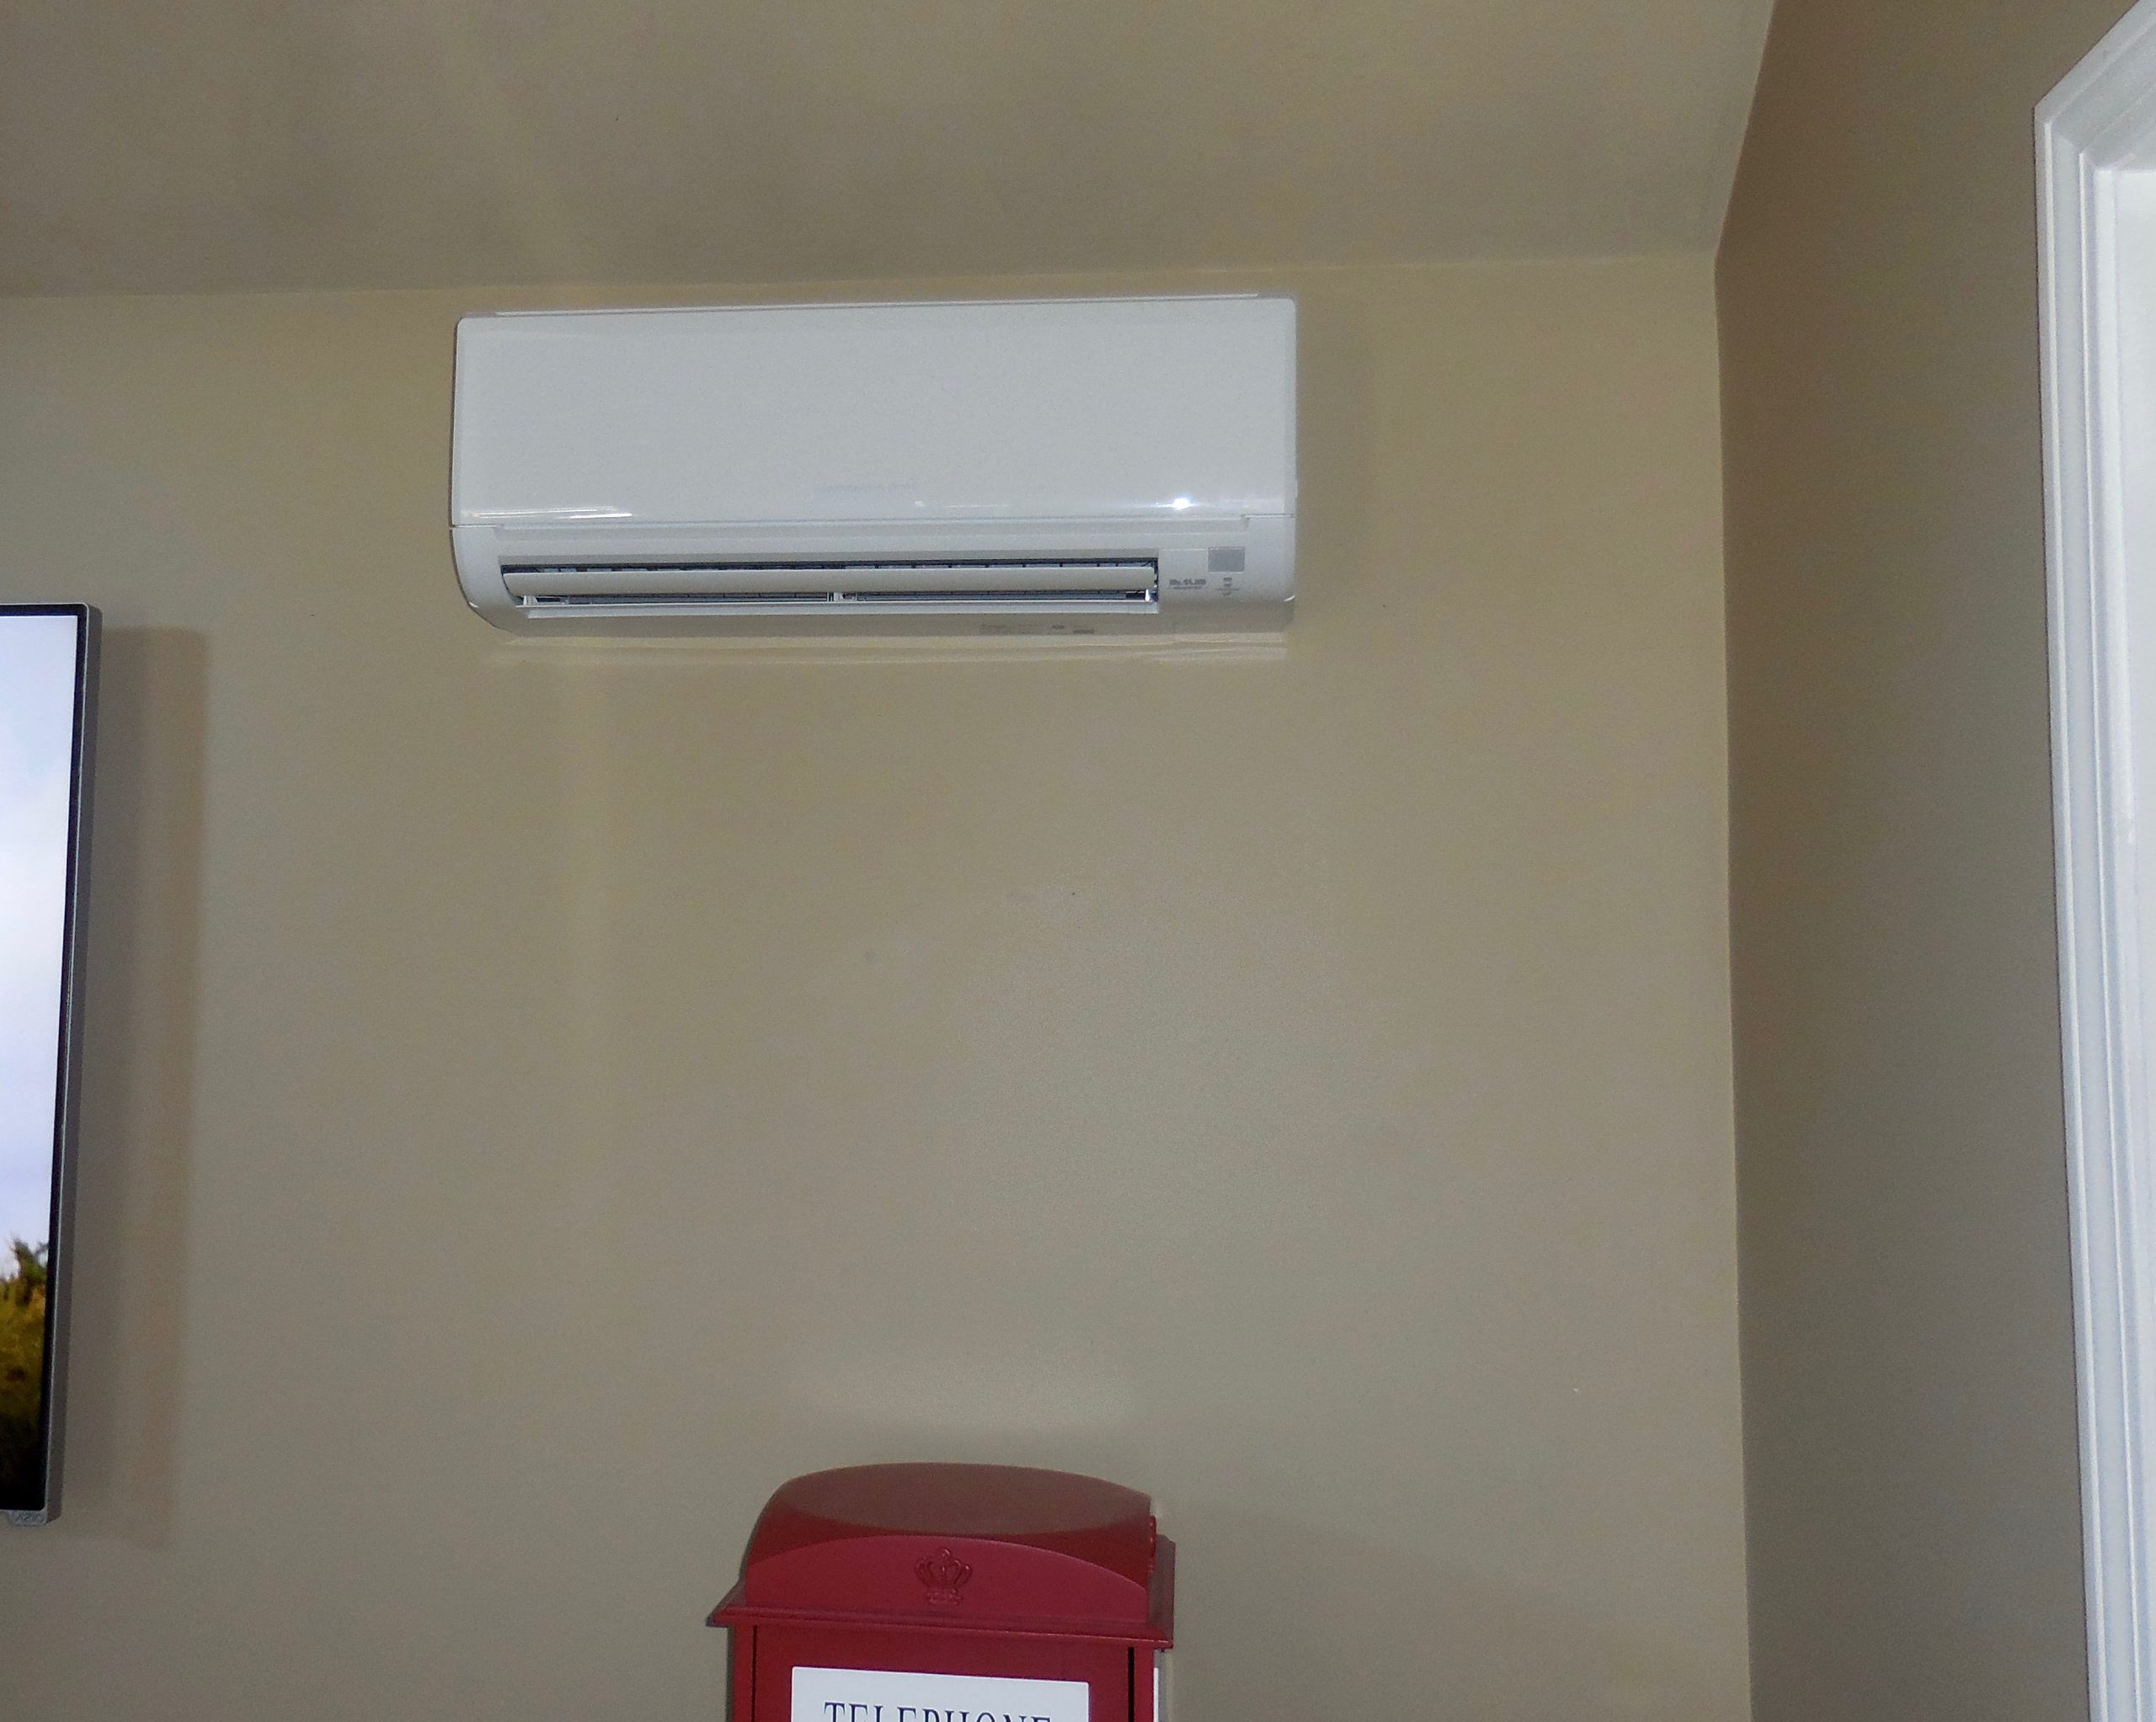 Indoor example of wall mounted ductless AC.